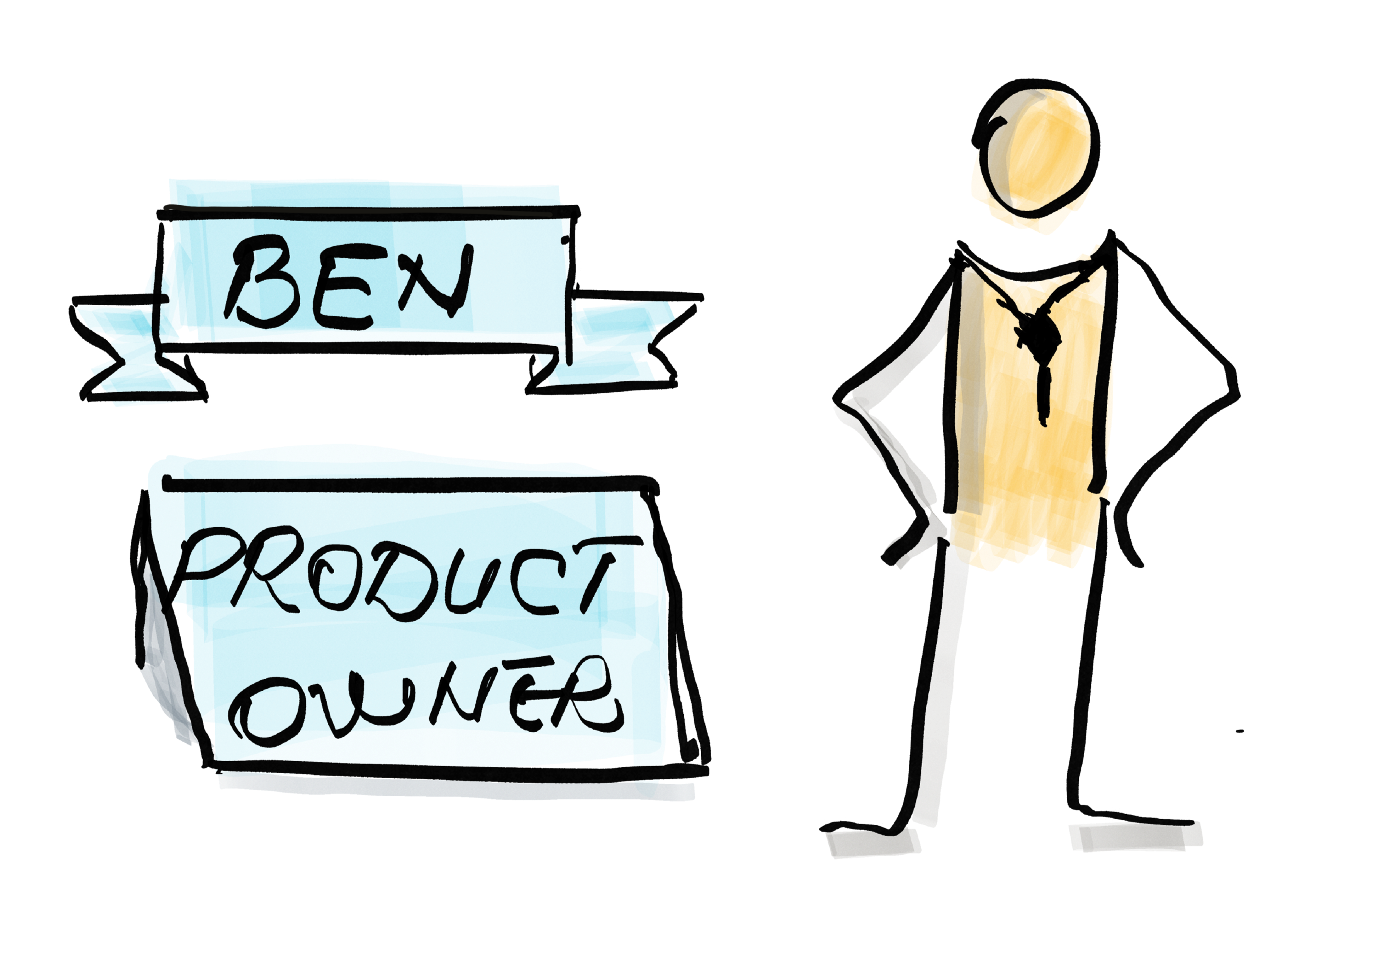 A product owner and his title and name—Ben